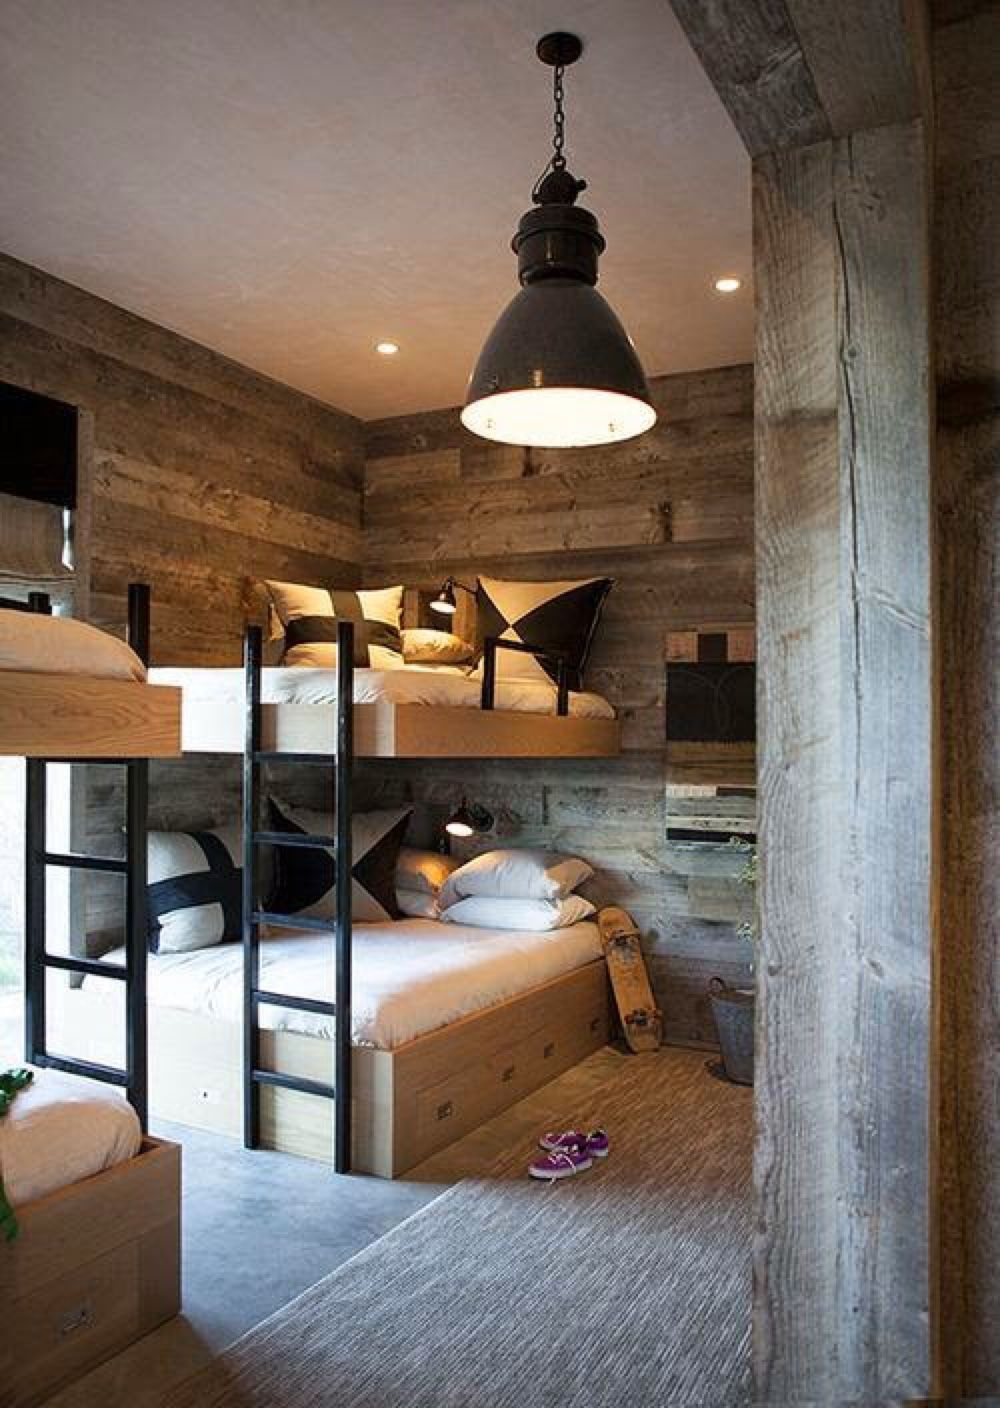 Another great cabin bunk roomhome in norway via planete deco